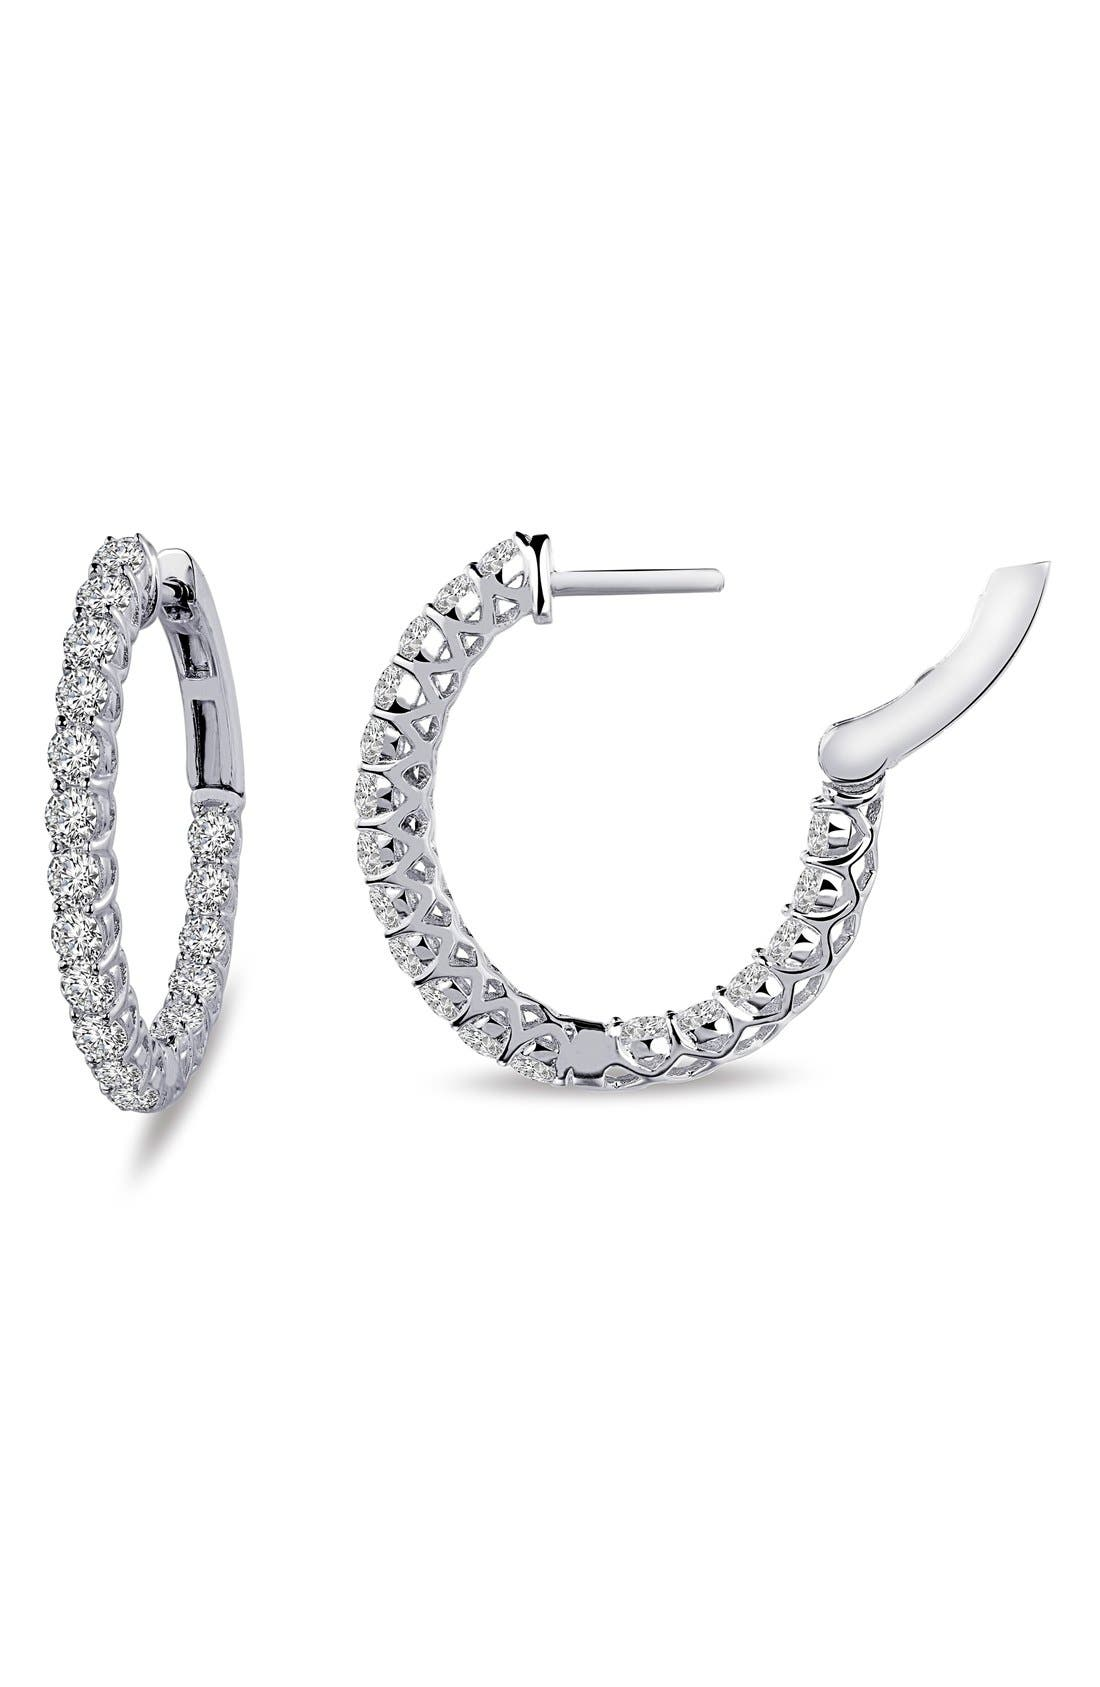 Lafonn 'Lassaire' Oval Hoop Earrings